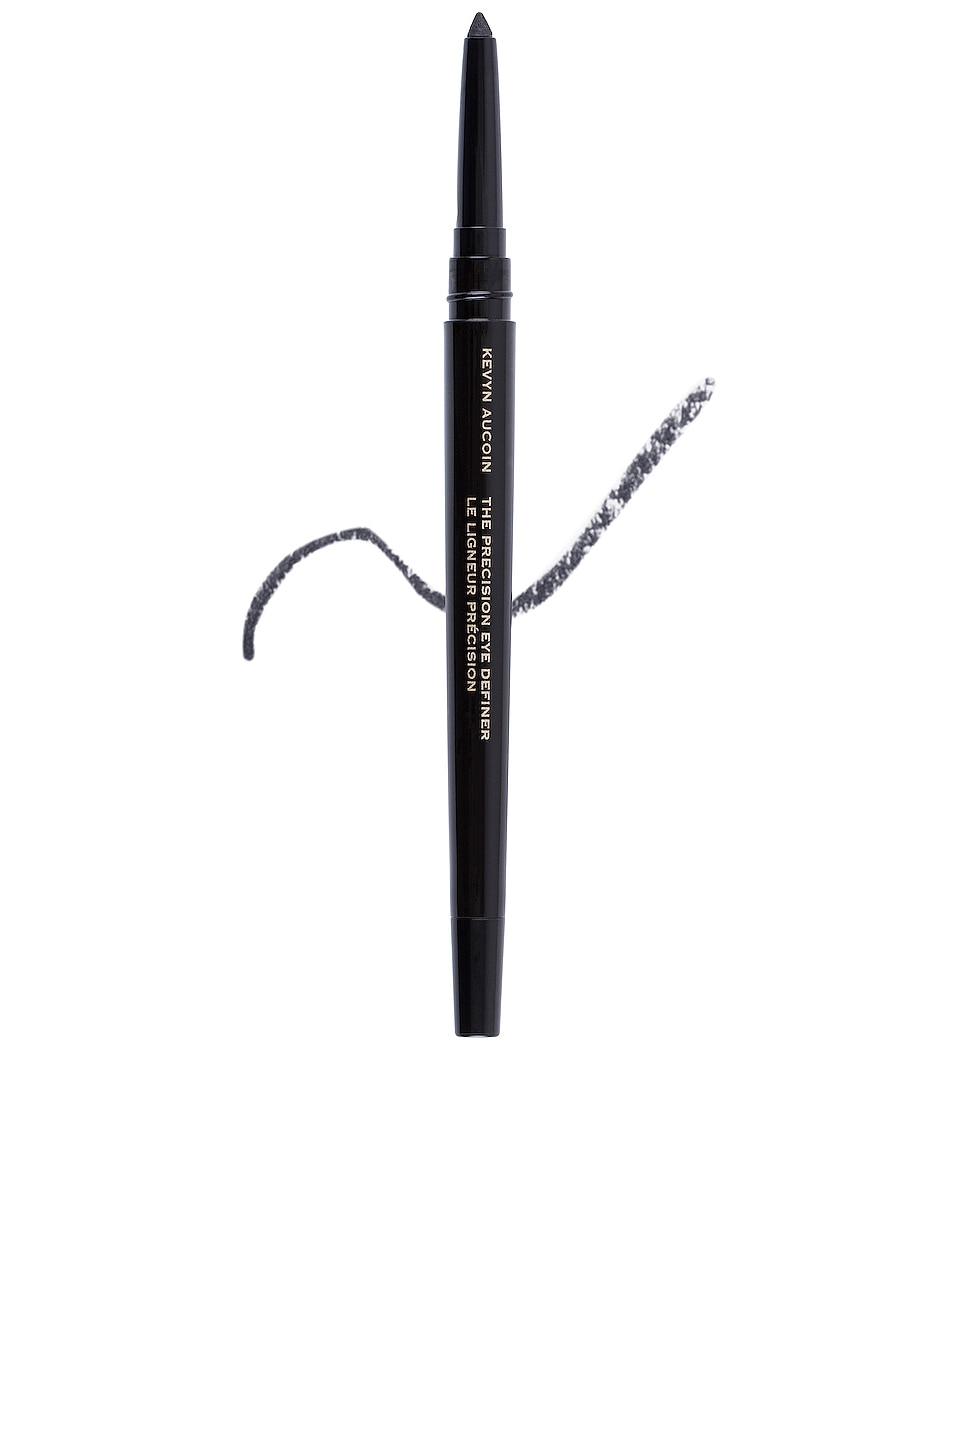 Kevyn Aucoin The Precision Eye Definer in Vanta